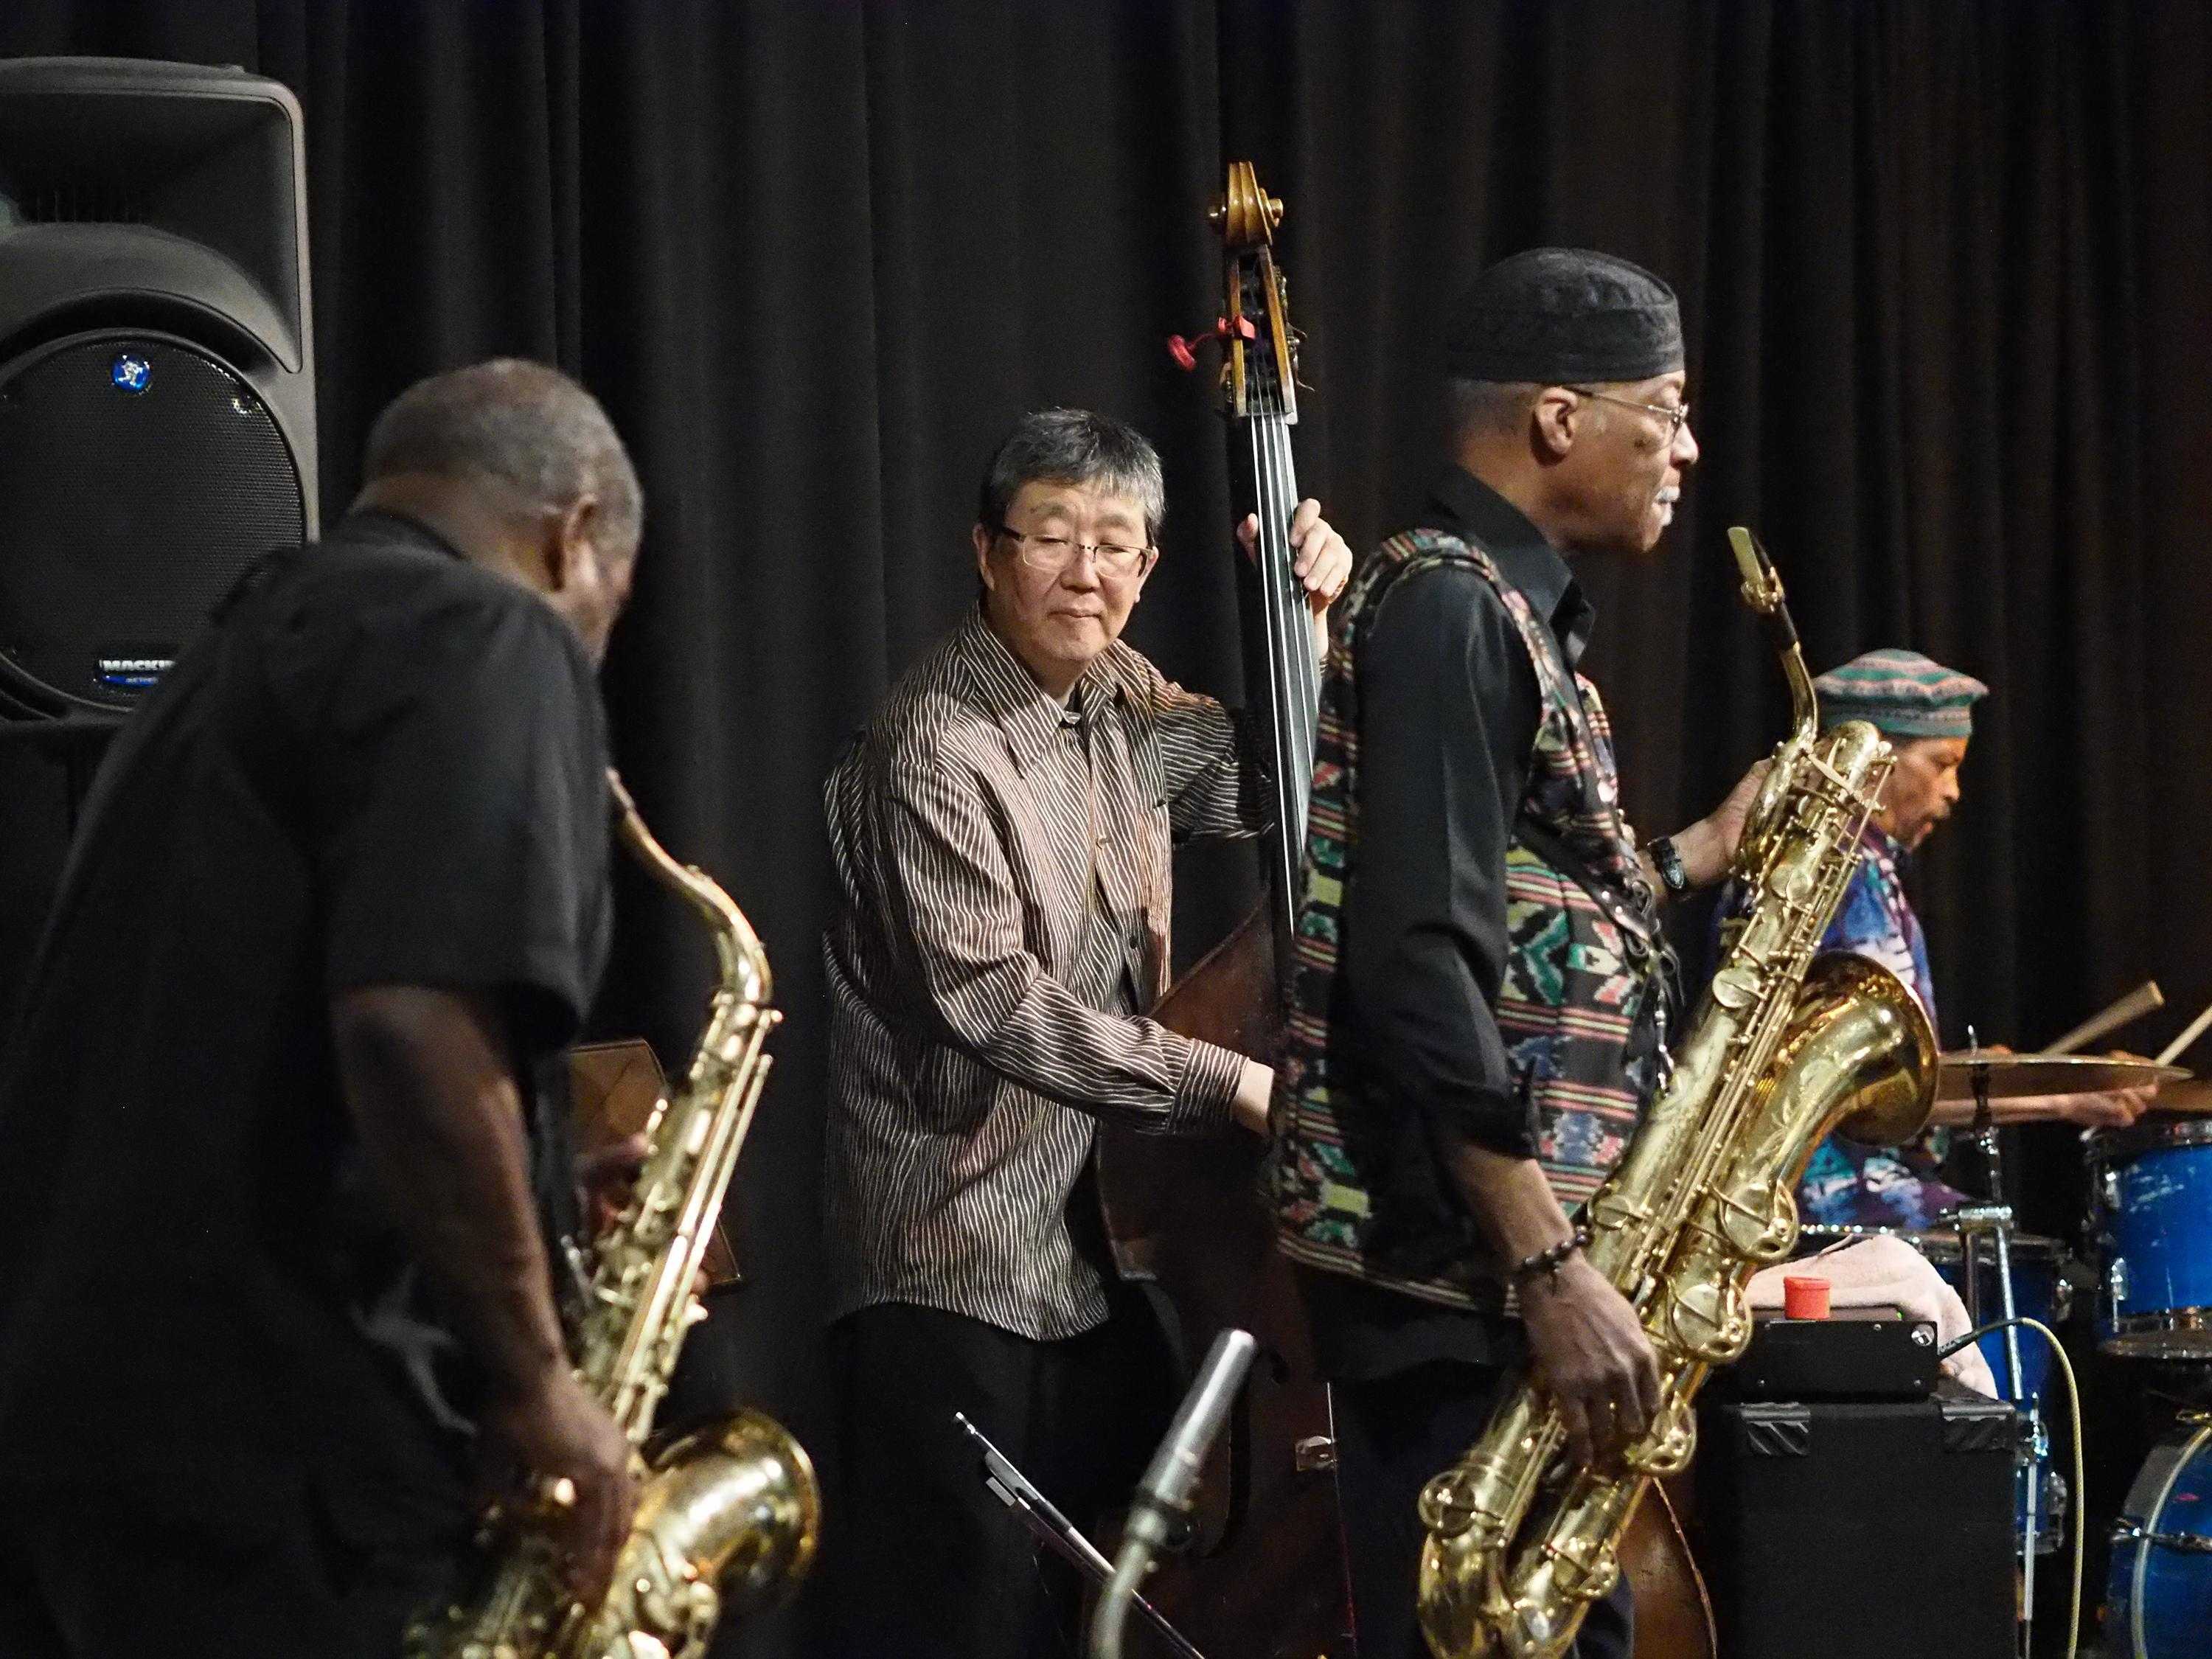 Jazz musicians performing on alto and tenor saxophones, string bass, and drums